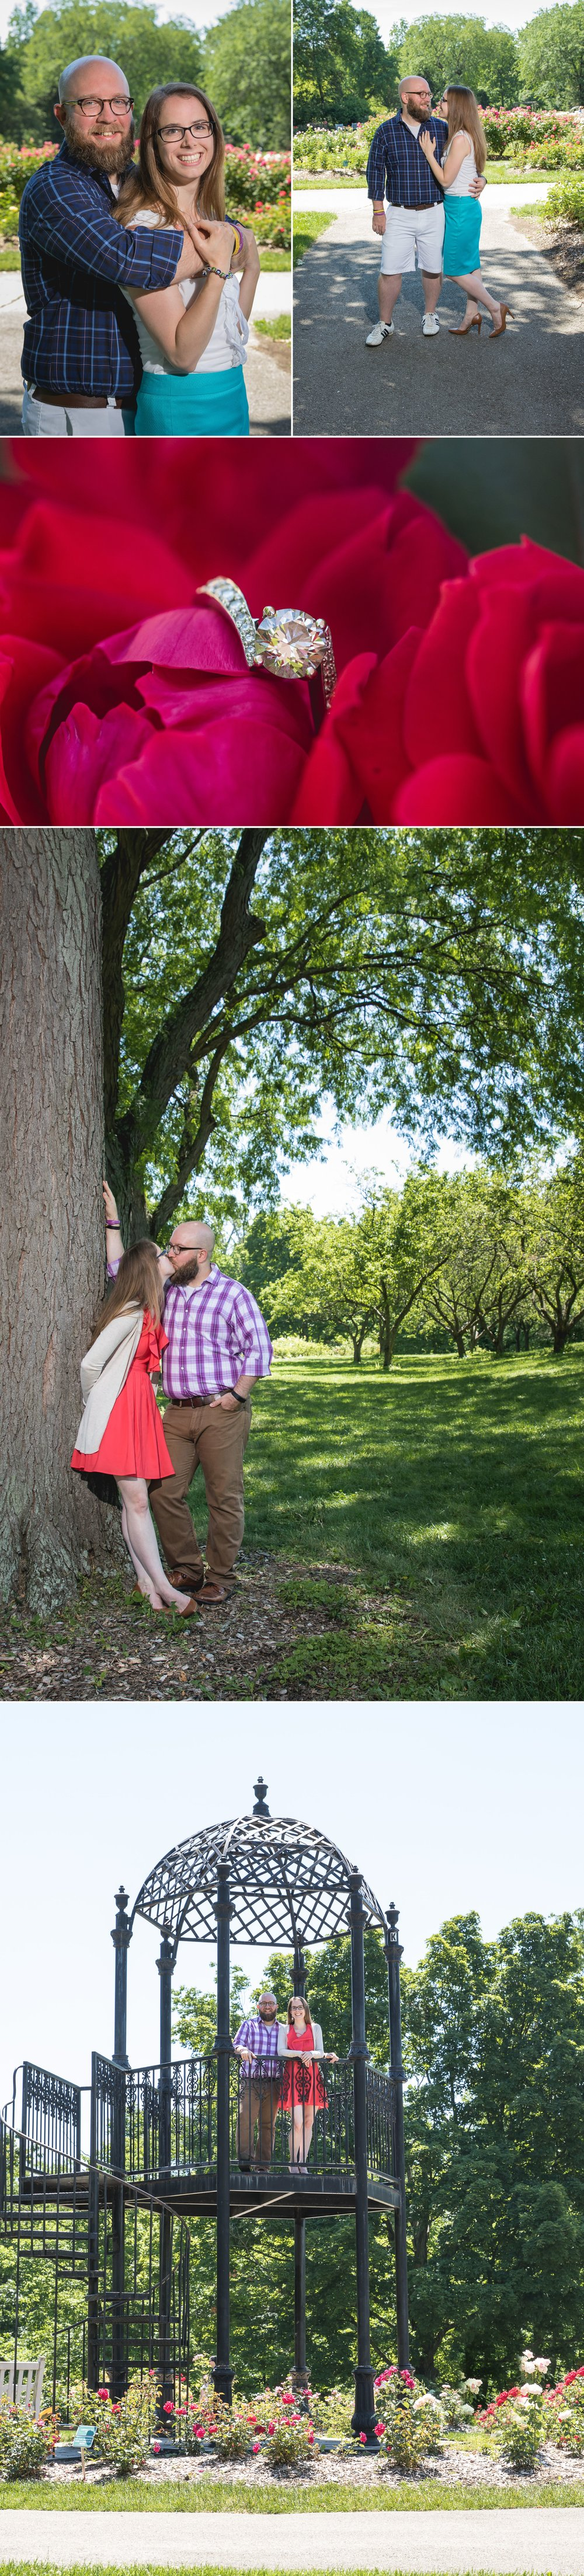 summer-engagement-portrait-session-park-of-roses-clintonville-columbus-ohio-muschlitz-photography-002.JPG